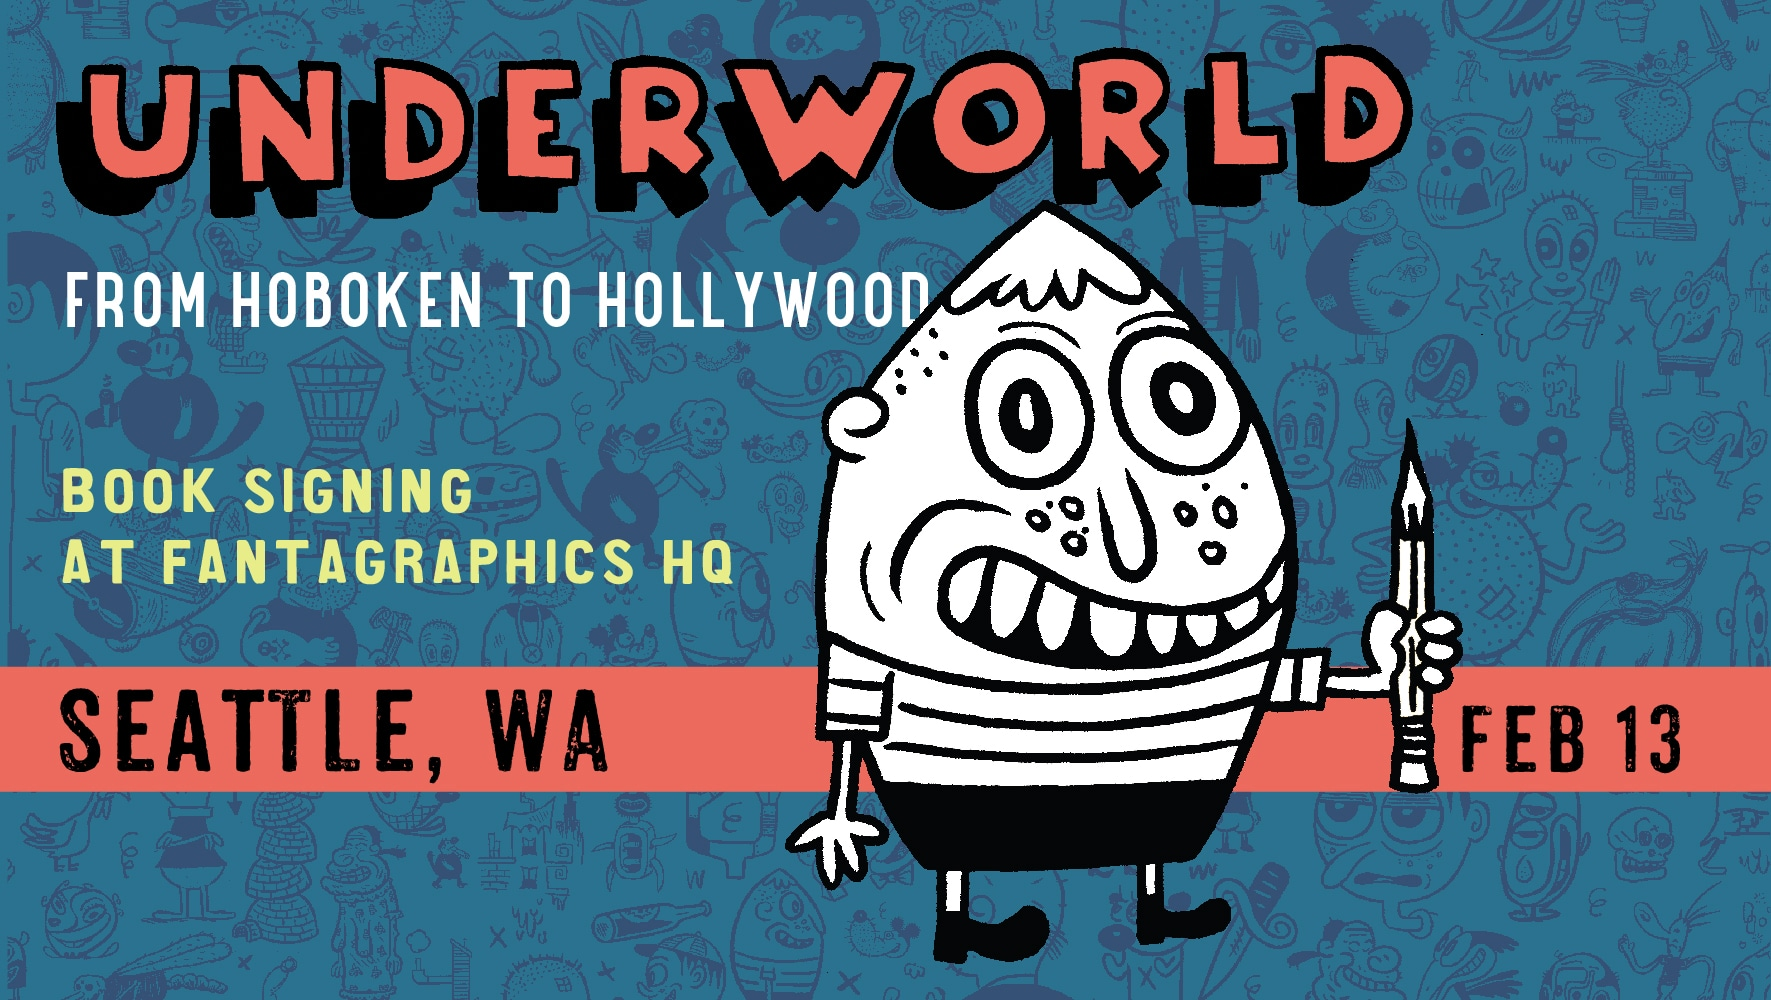 Book signing at Fantagraphics in Seattle Feb 13